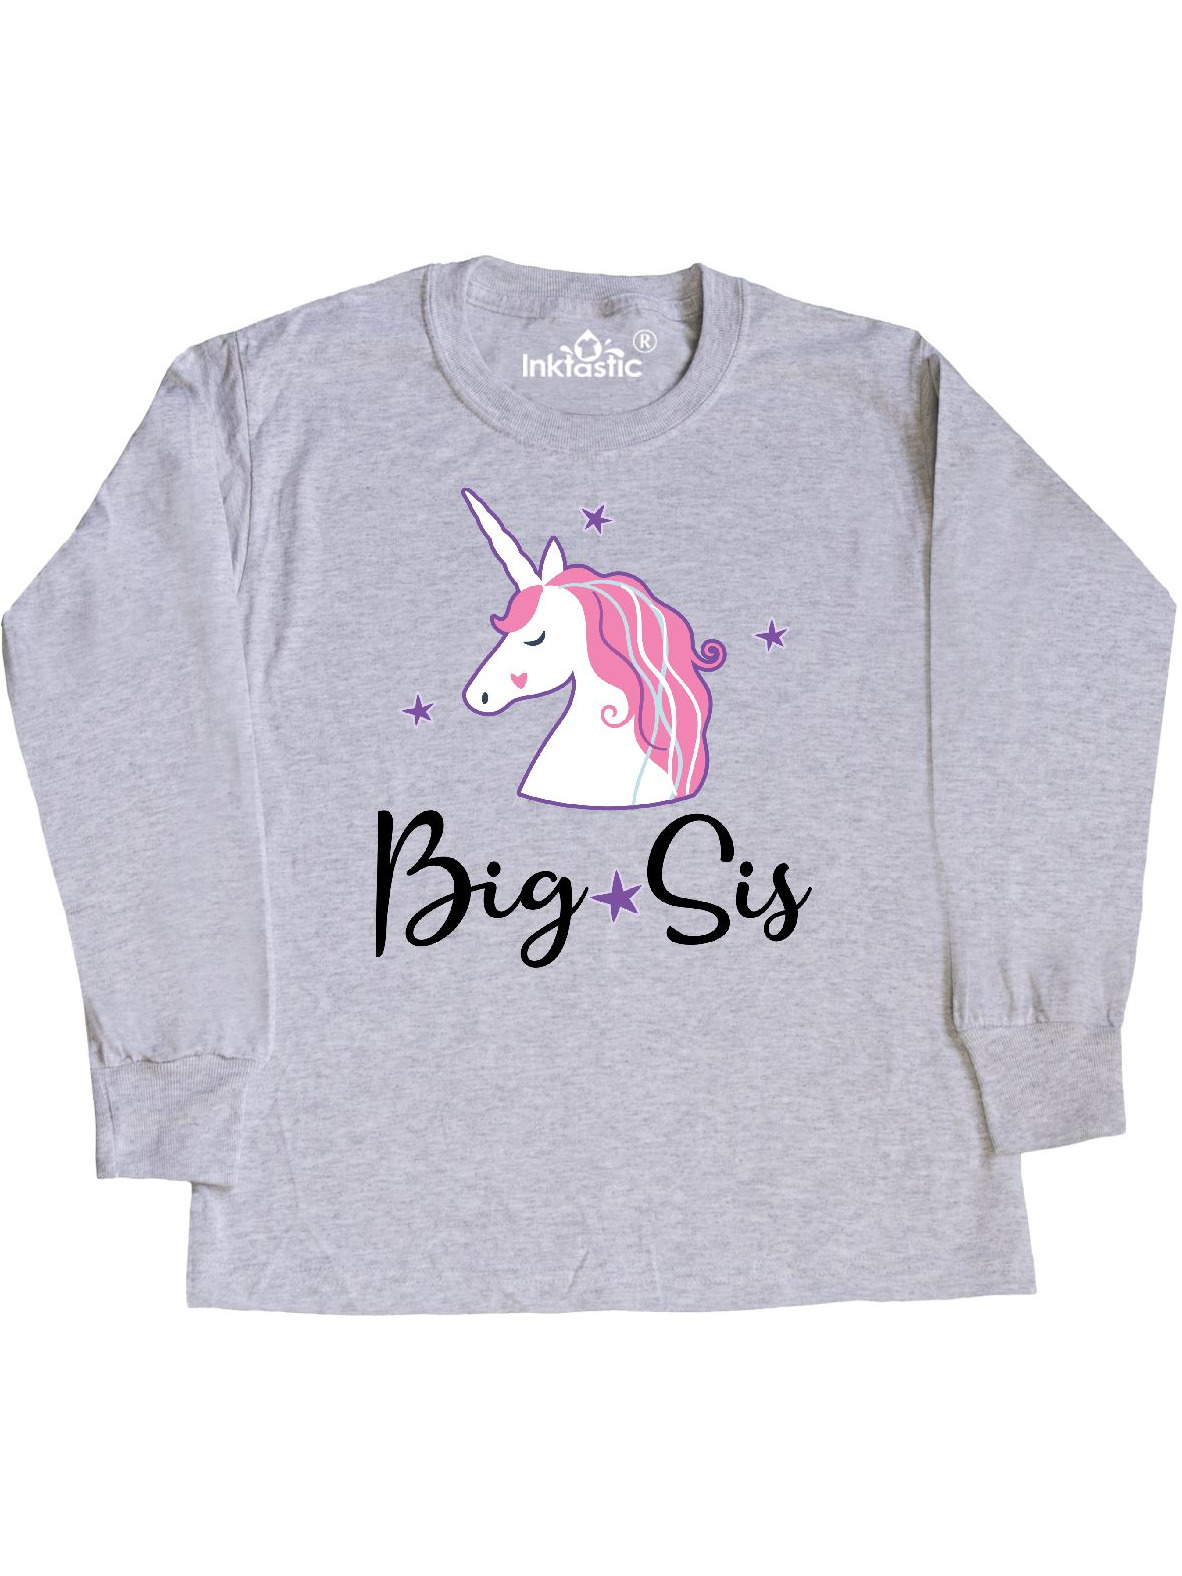 Cute Unicorn Toddler T-Shirt inktastic Most Magical Sister